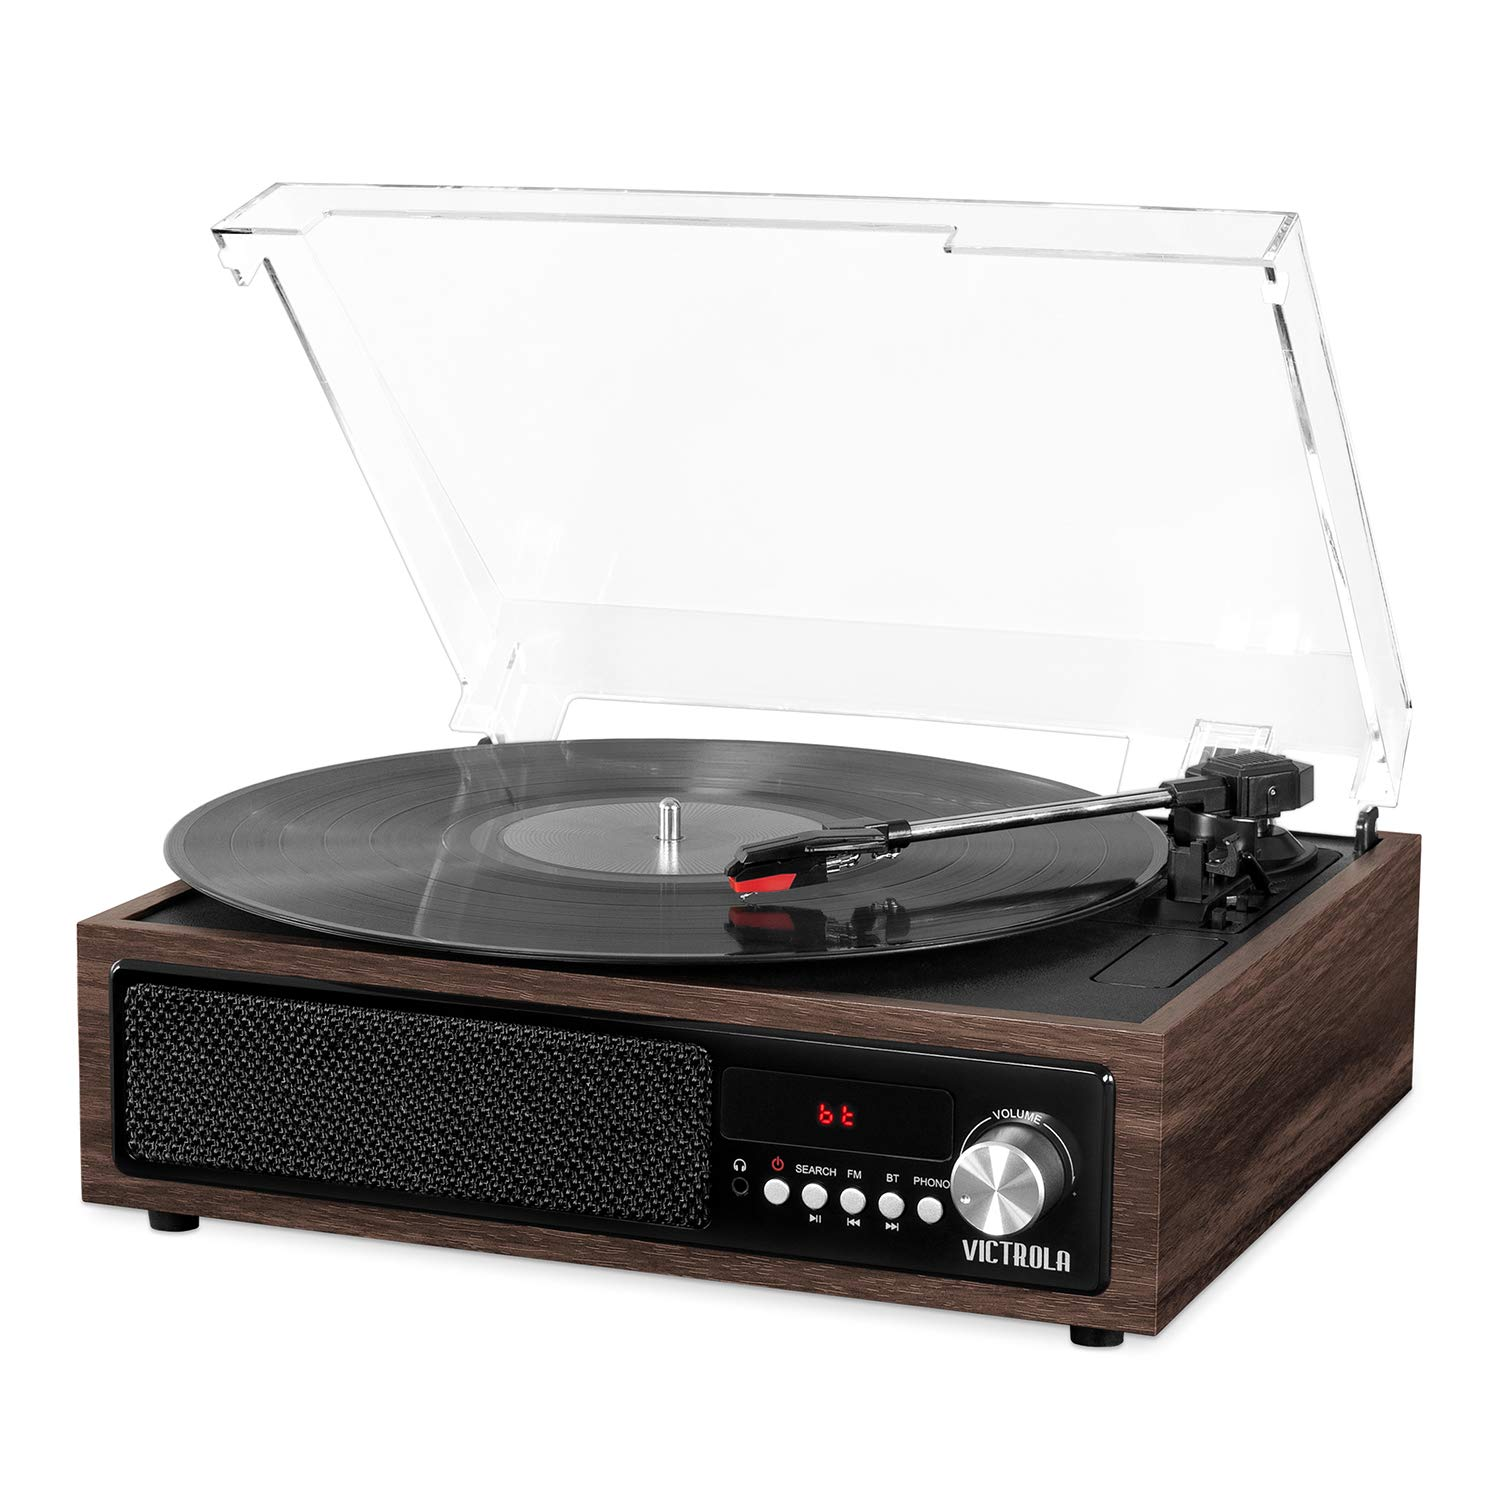 Victrola 3-in-1 Bluetooth Record Player with Built in Speakers and 3-Speed Turntable, Espresso